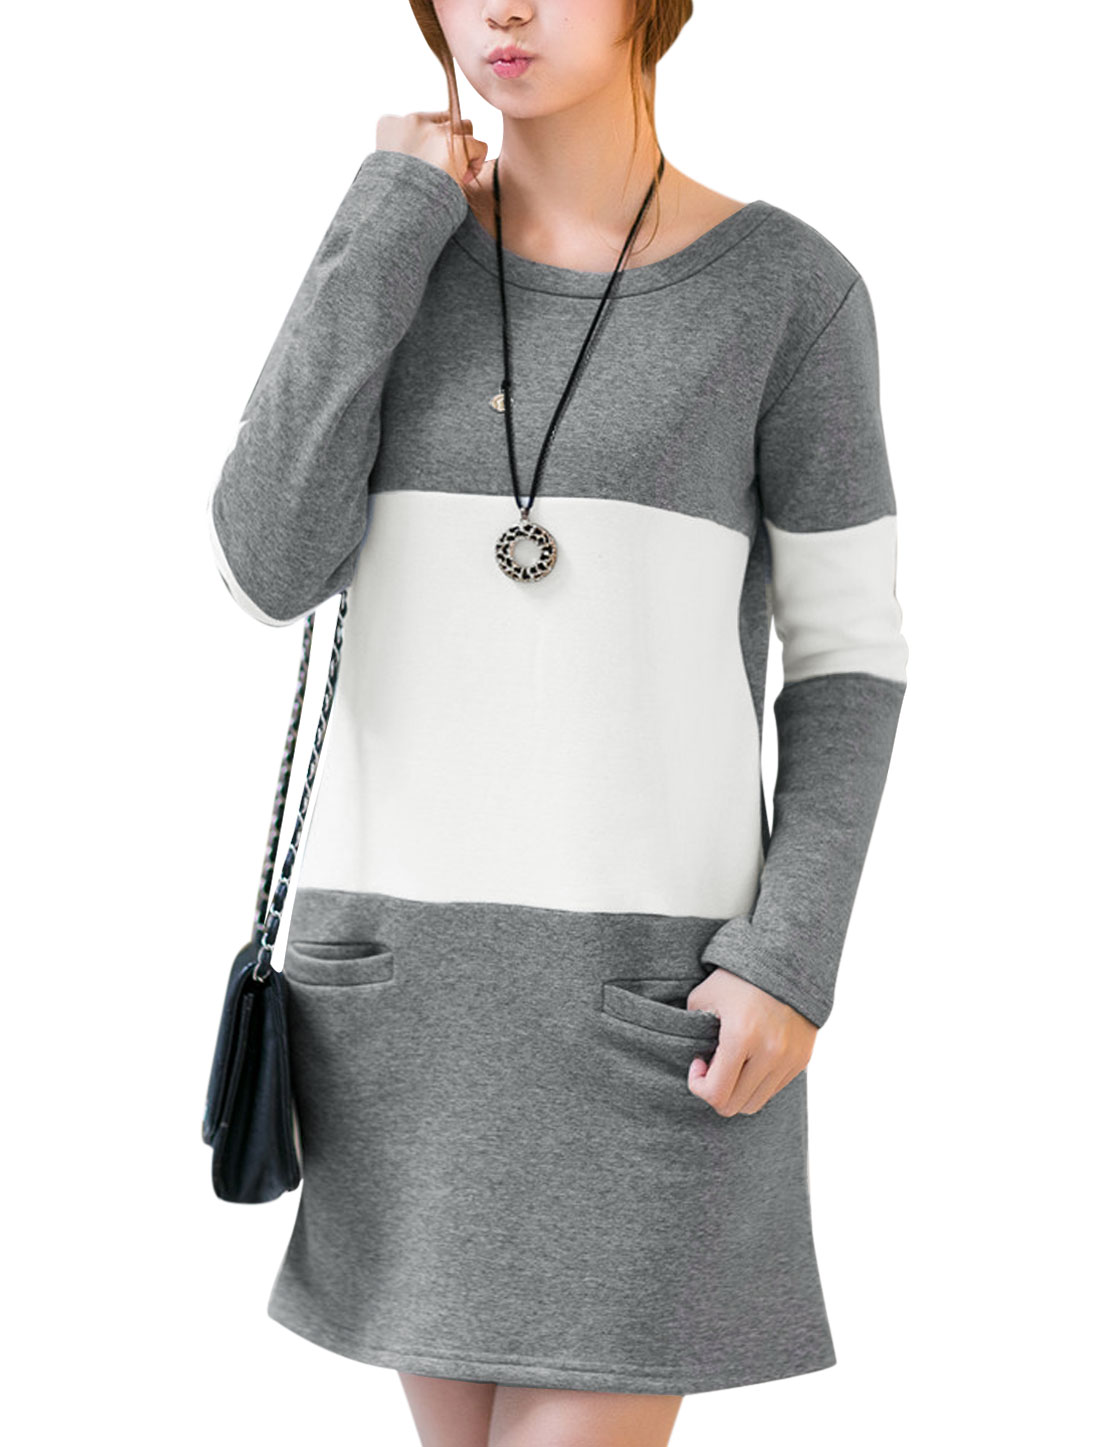 Lady Long Sleeve Contrast Color Fleece Inside Soft Dress White Gray S